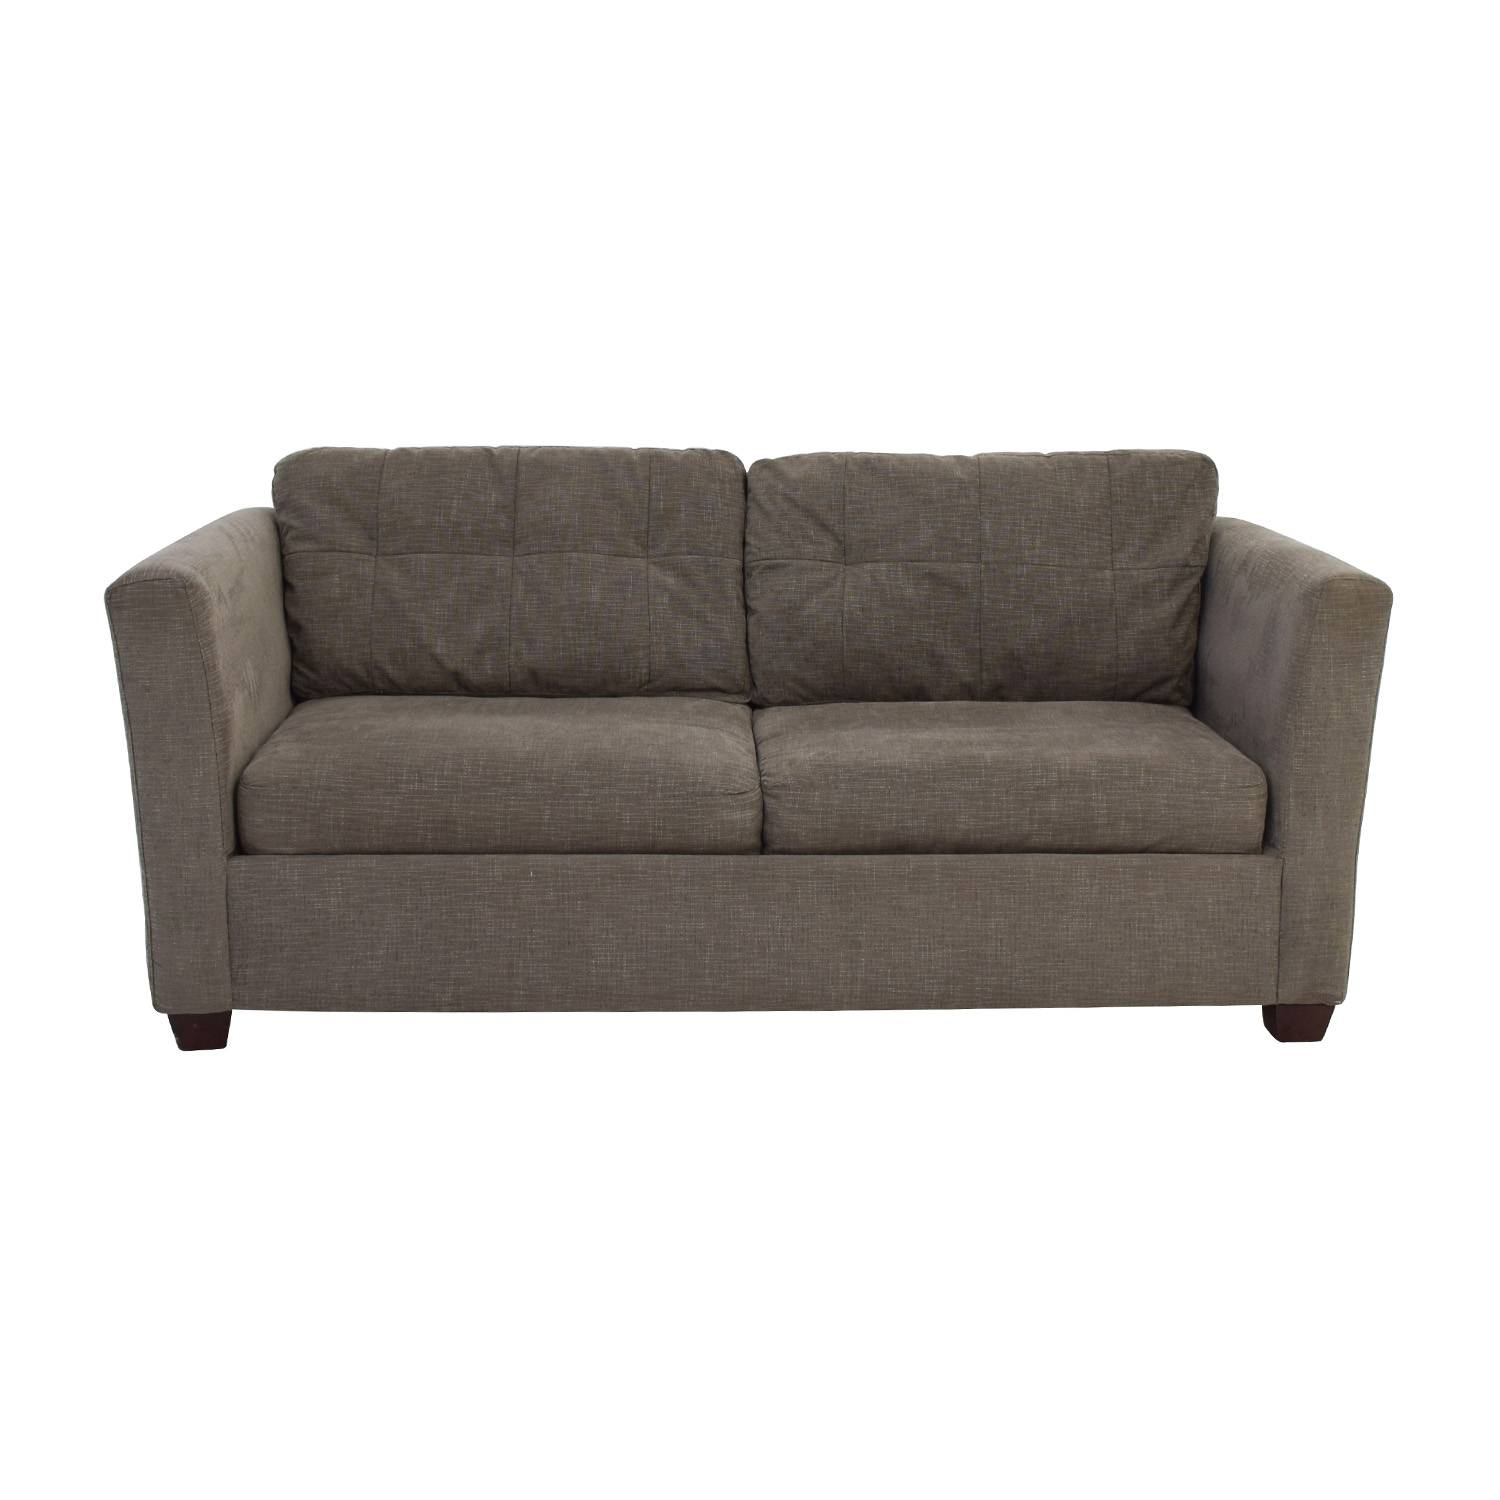 58% Off - Bauhaus Bauhaus Grey Queen Sleeper Sofa / Sofas in Bauhaus Sleeper Sofa (Image 1 of 30)